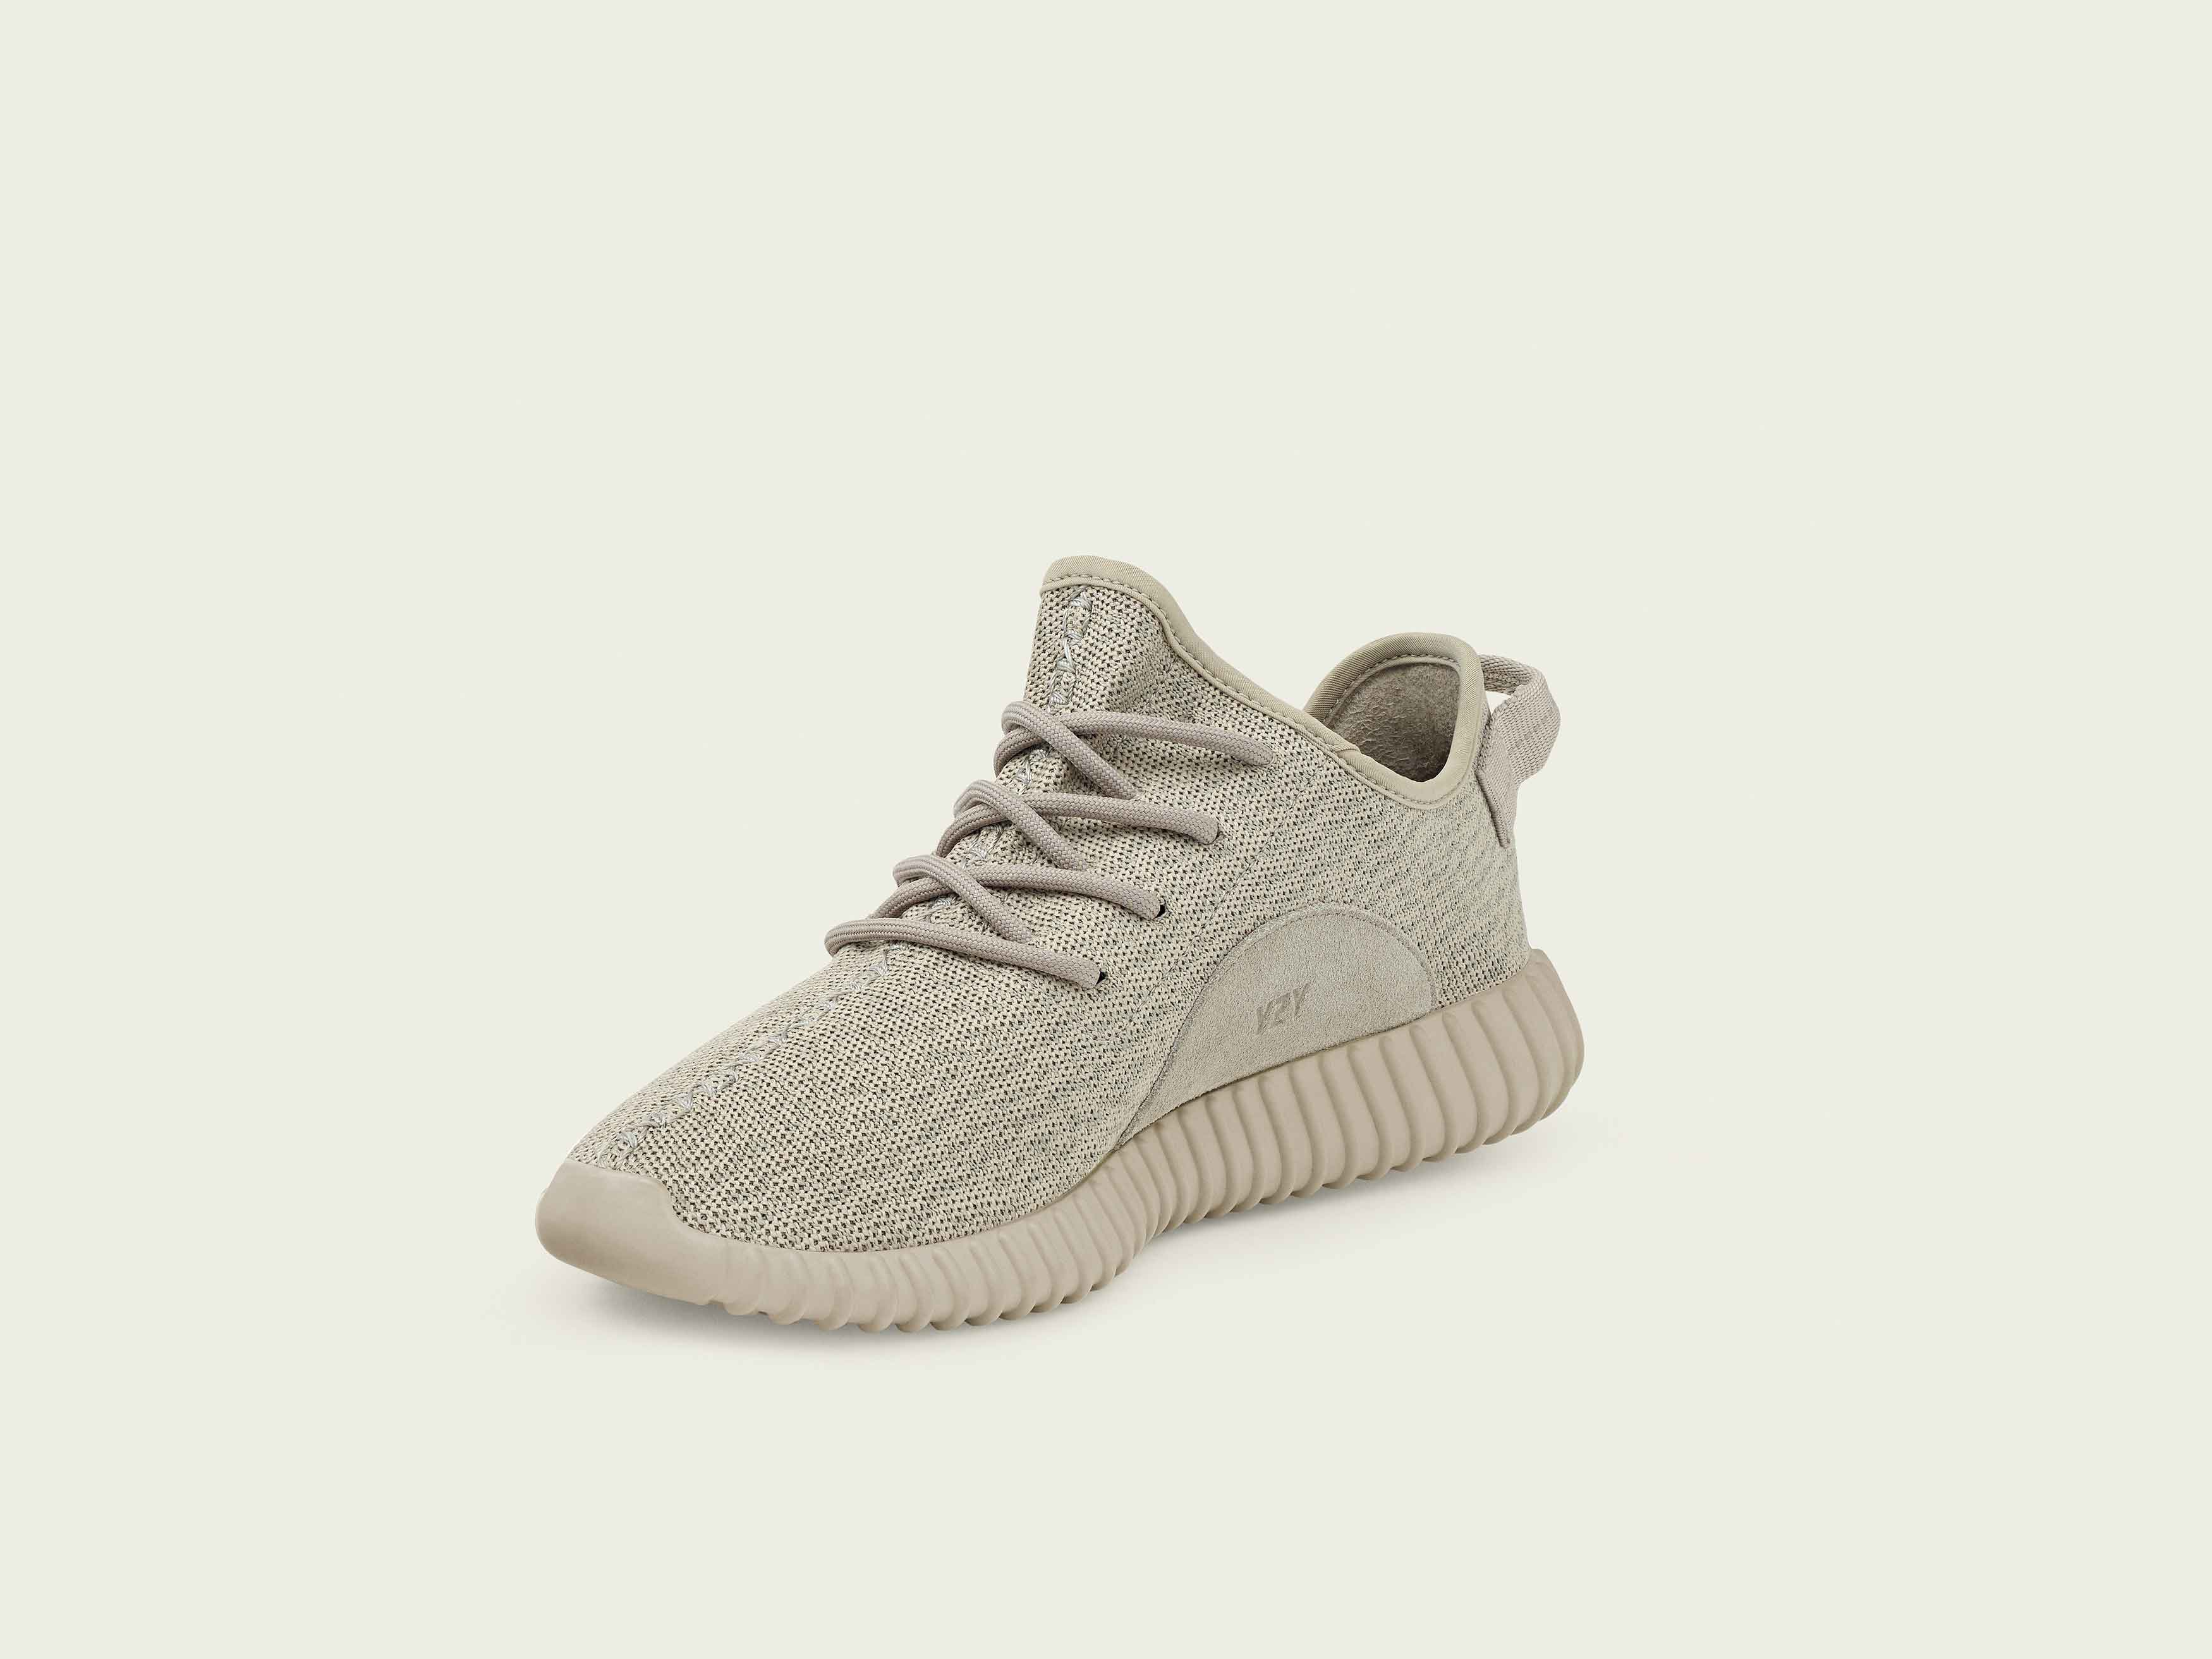 adidas yeezy womens price yeezy ultra boost release